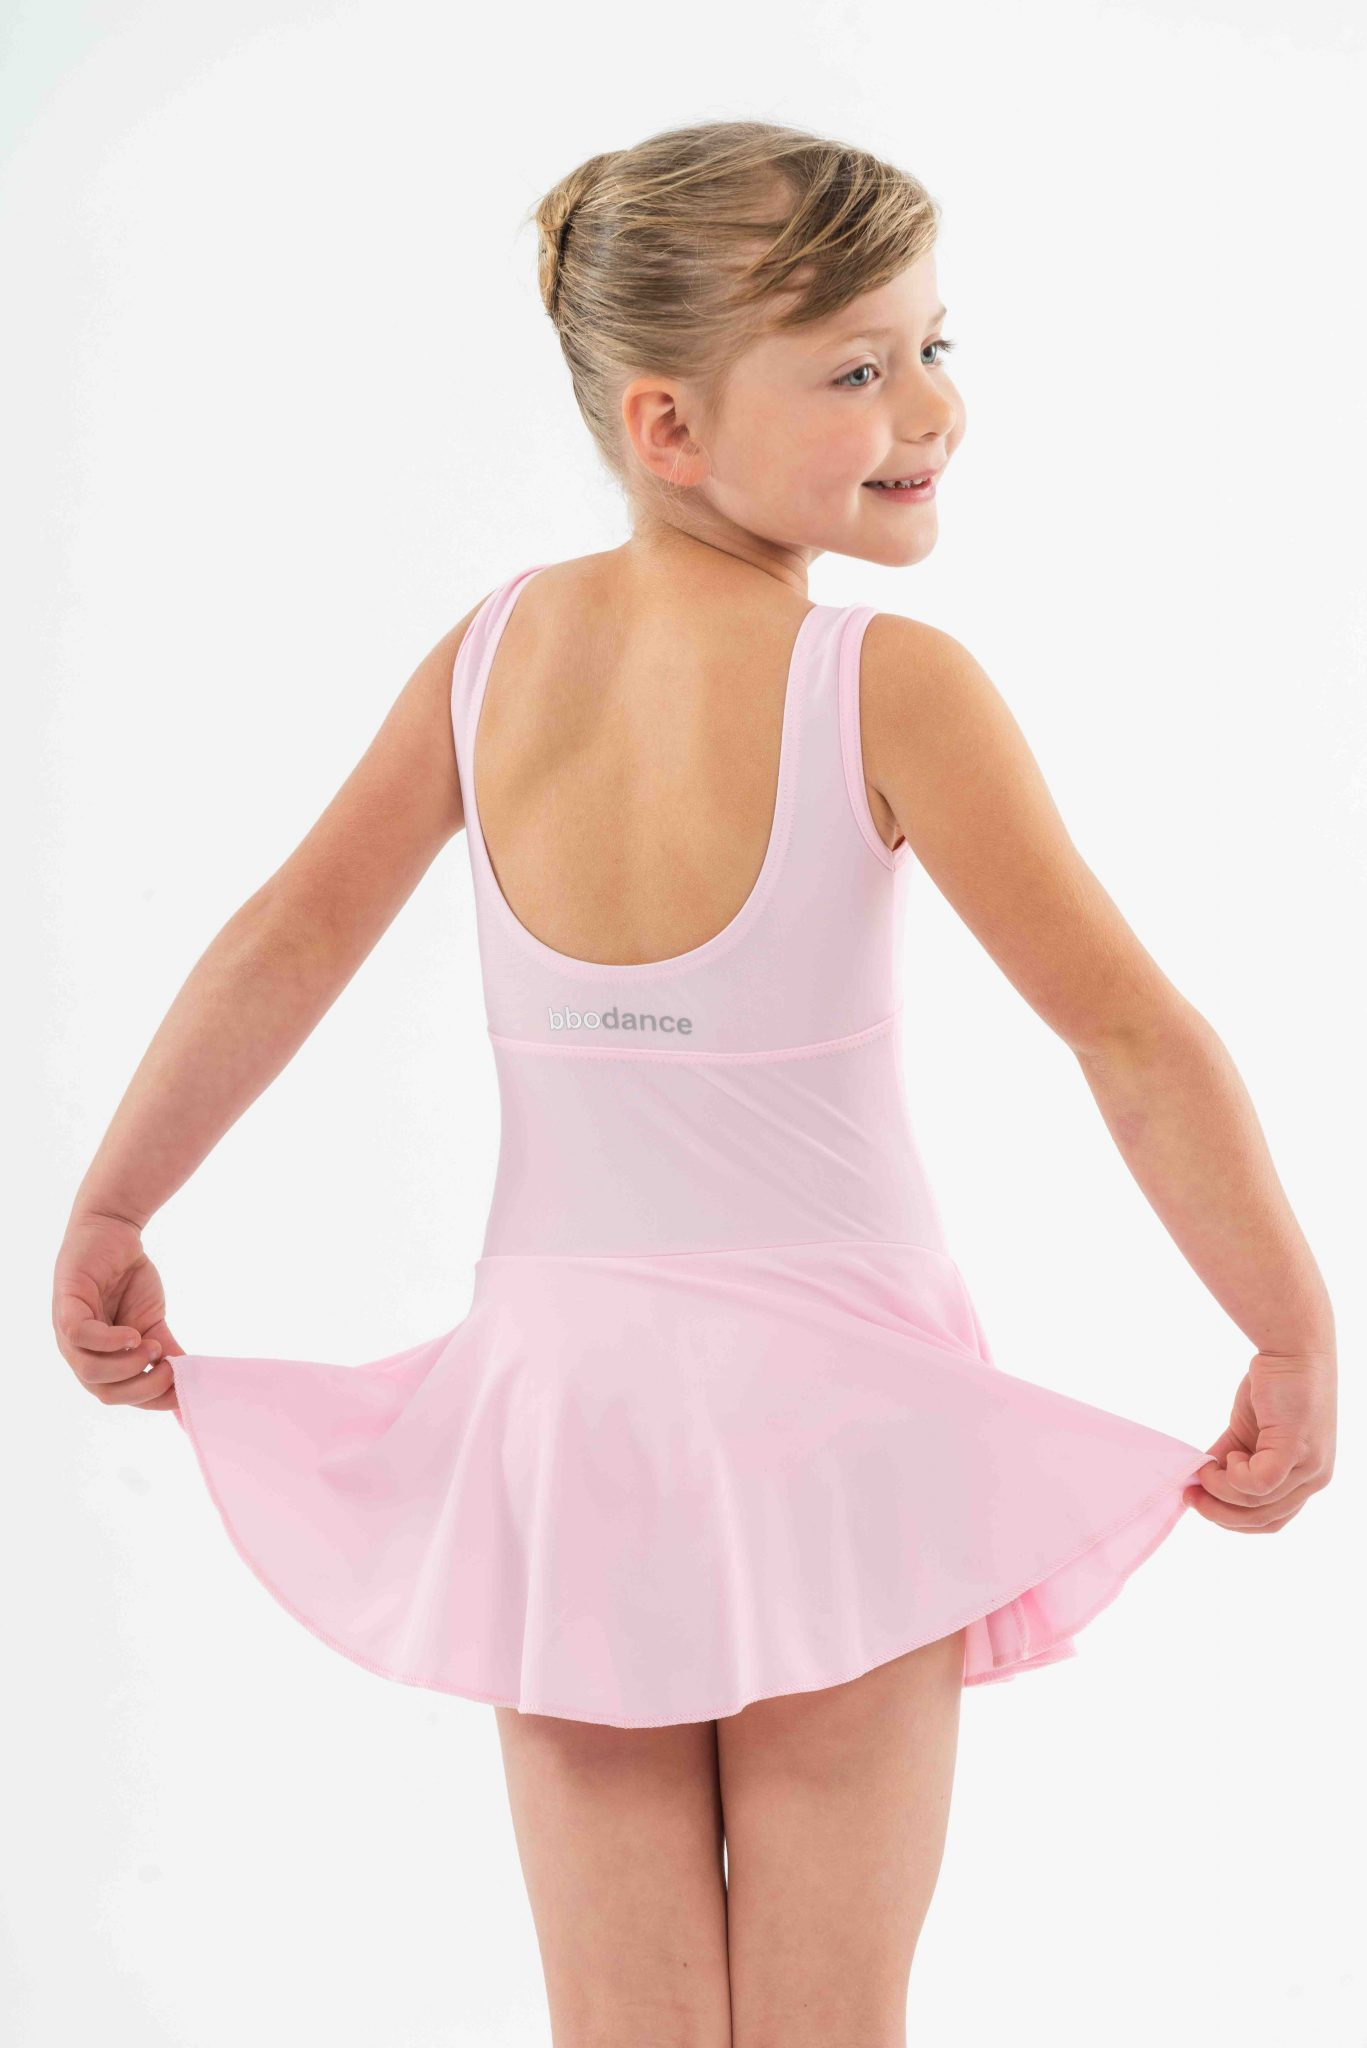 brighton ballet school primary ballet leotard